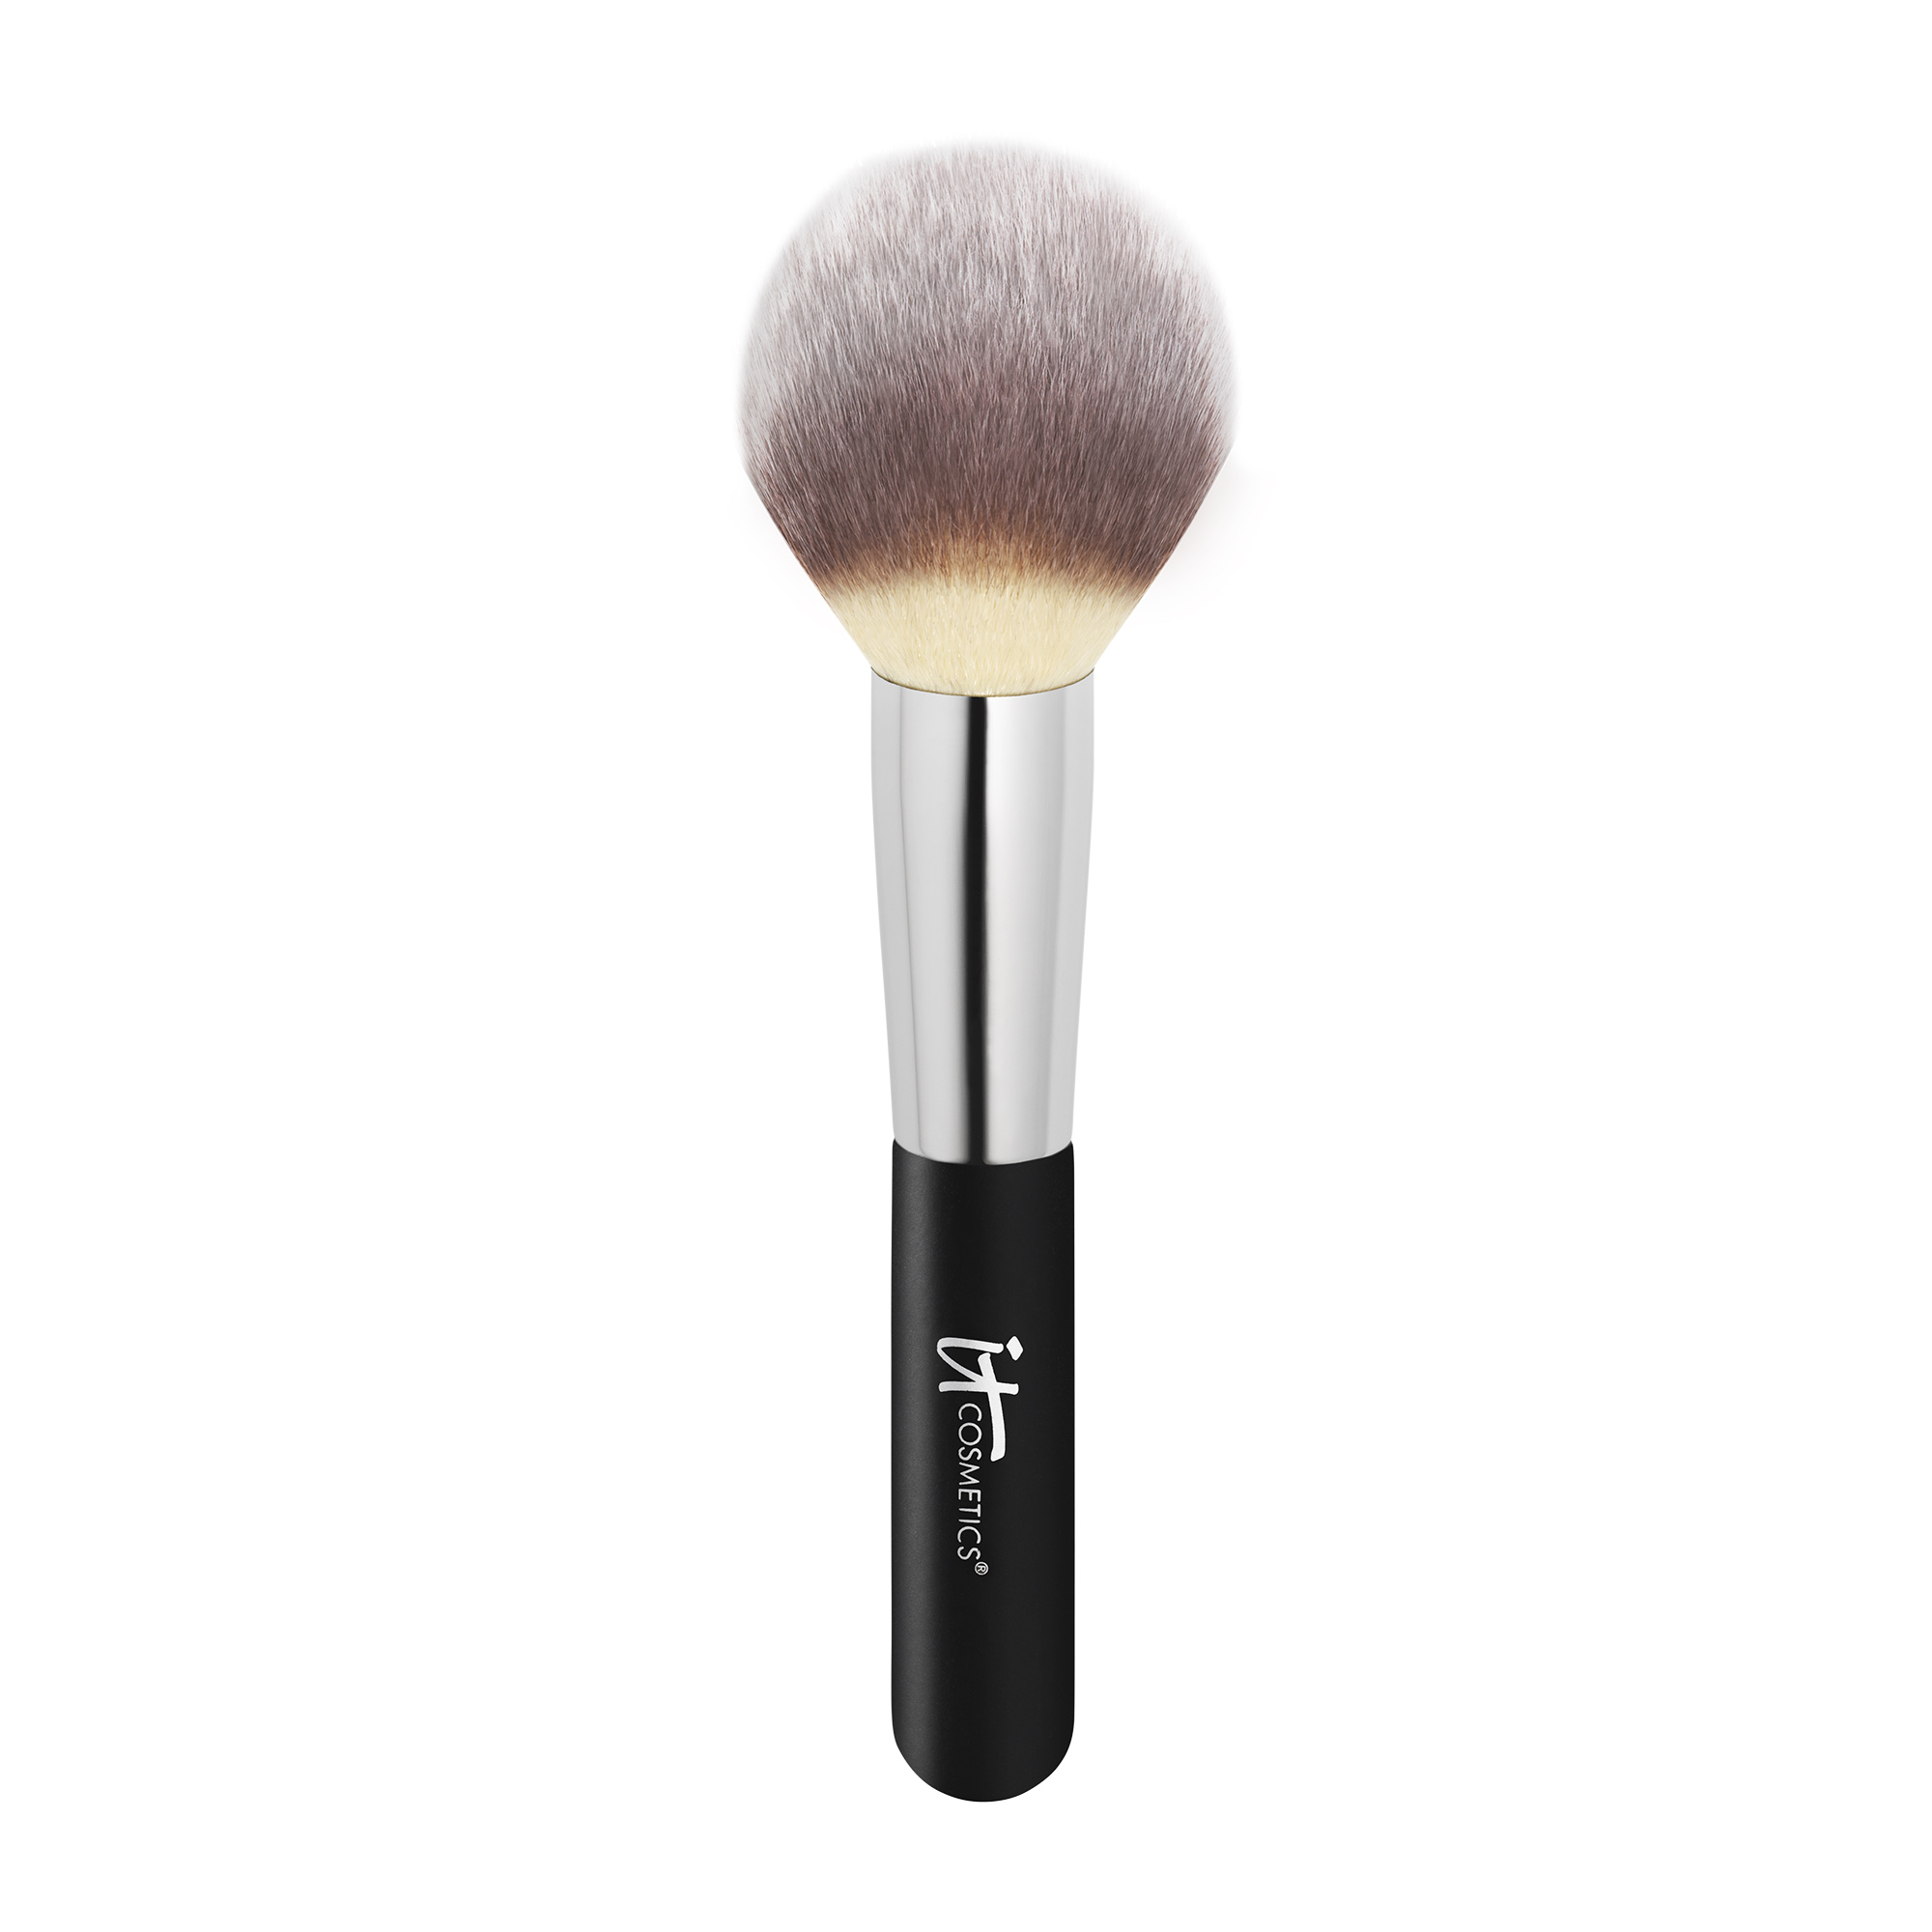 Heavenly Luxe™ Wand Ball Powder Brush #8